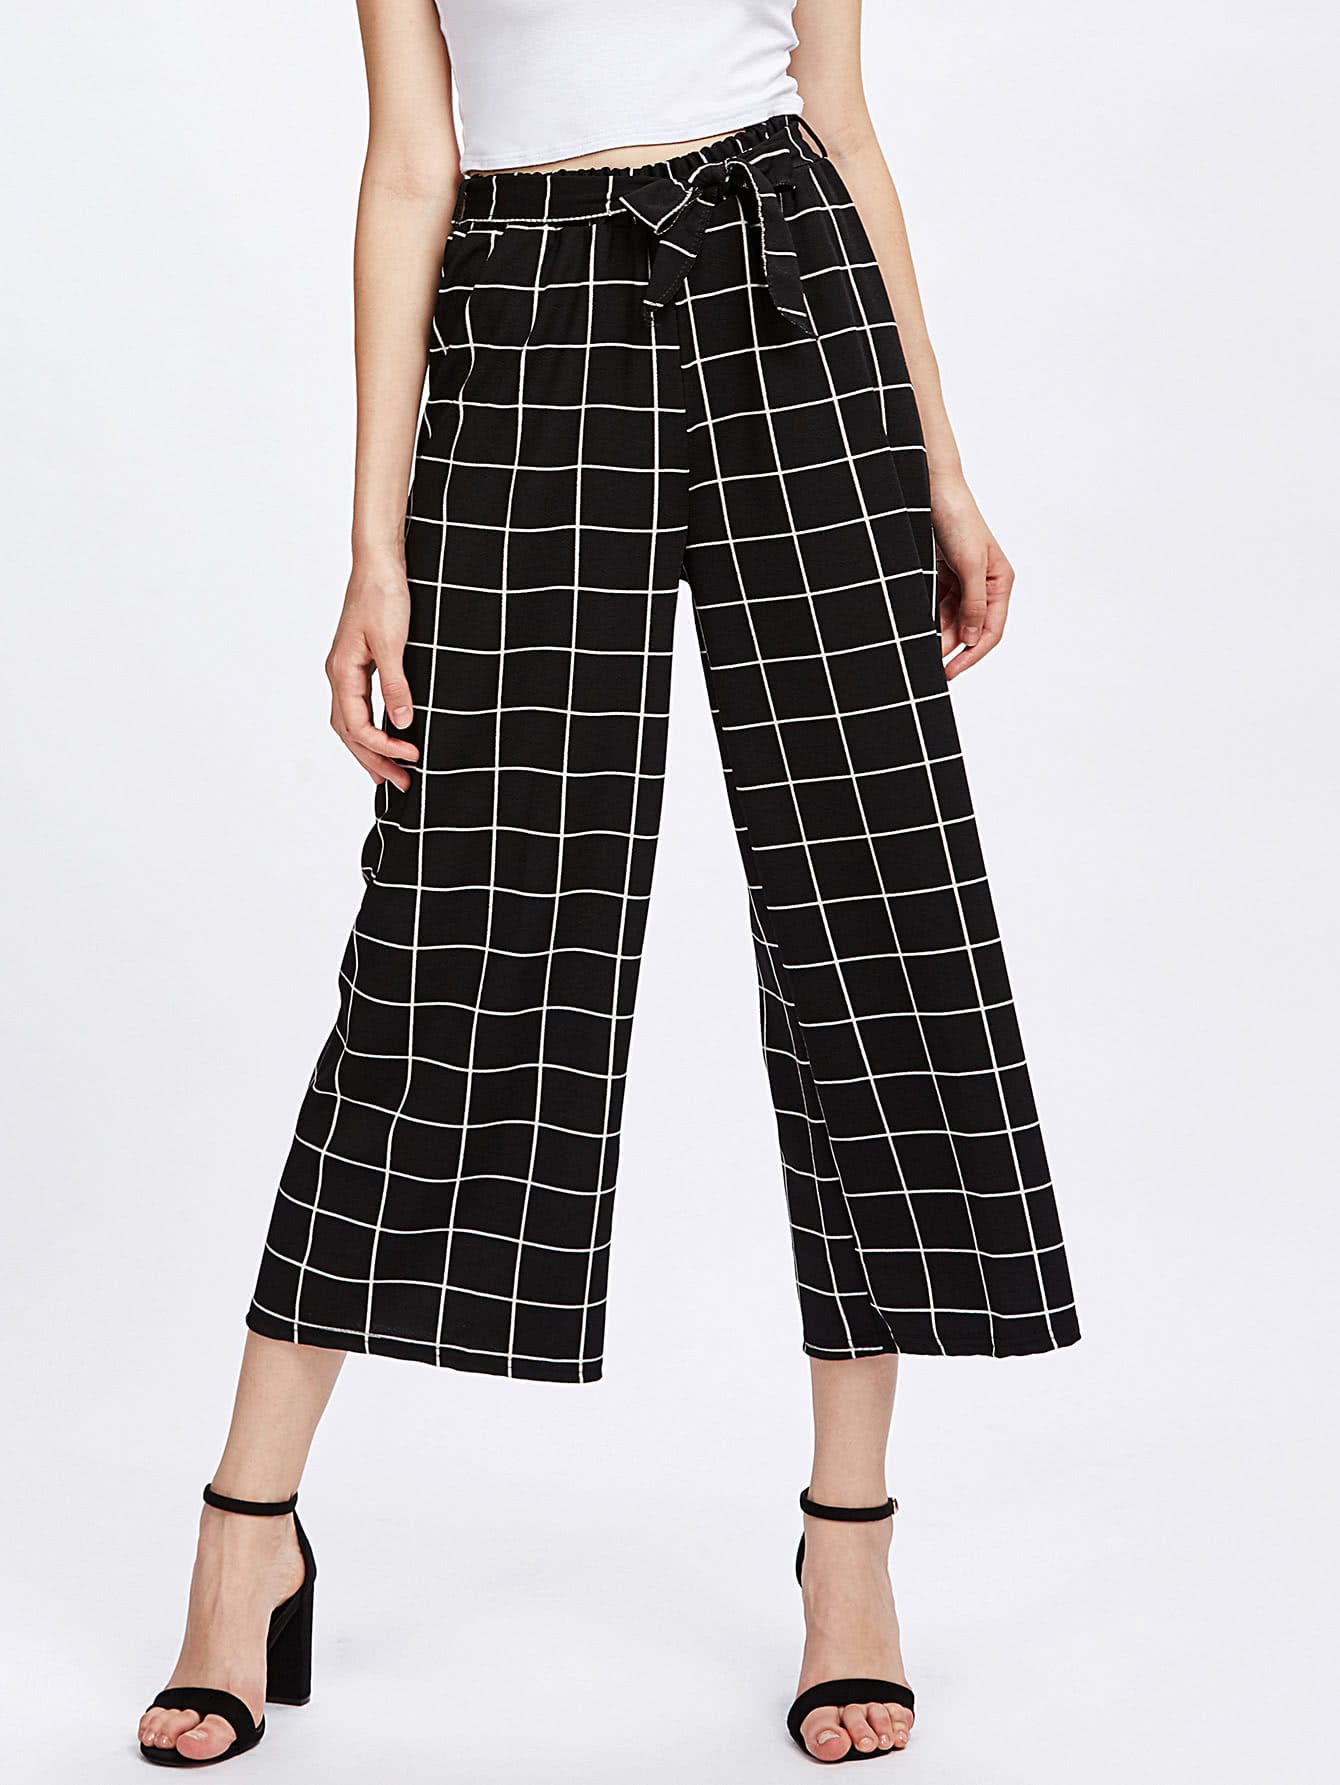 Grid Print Self Tie Wide Leg Pants все цены